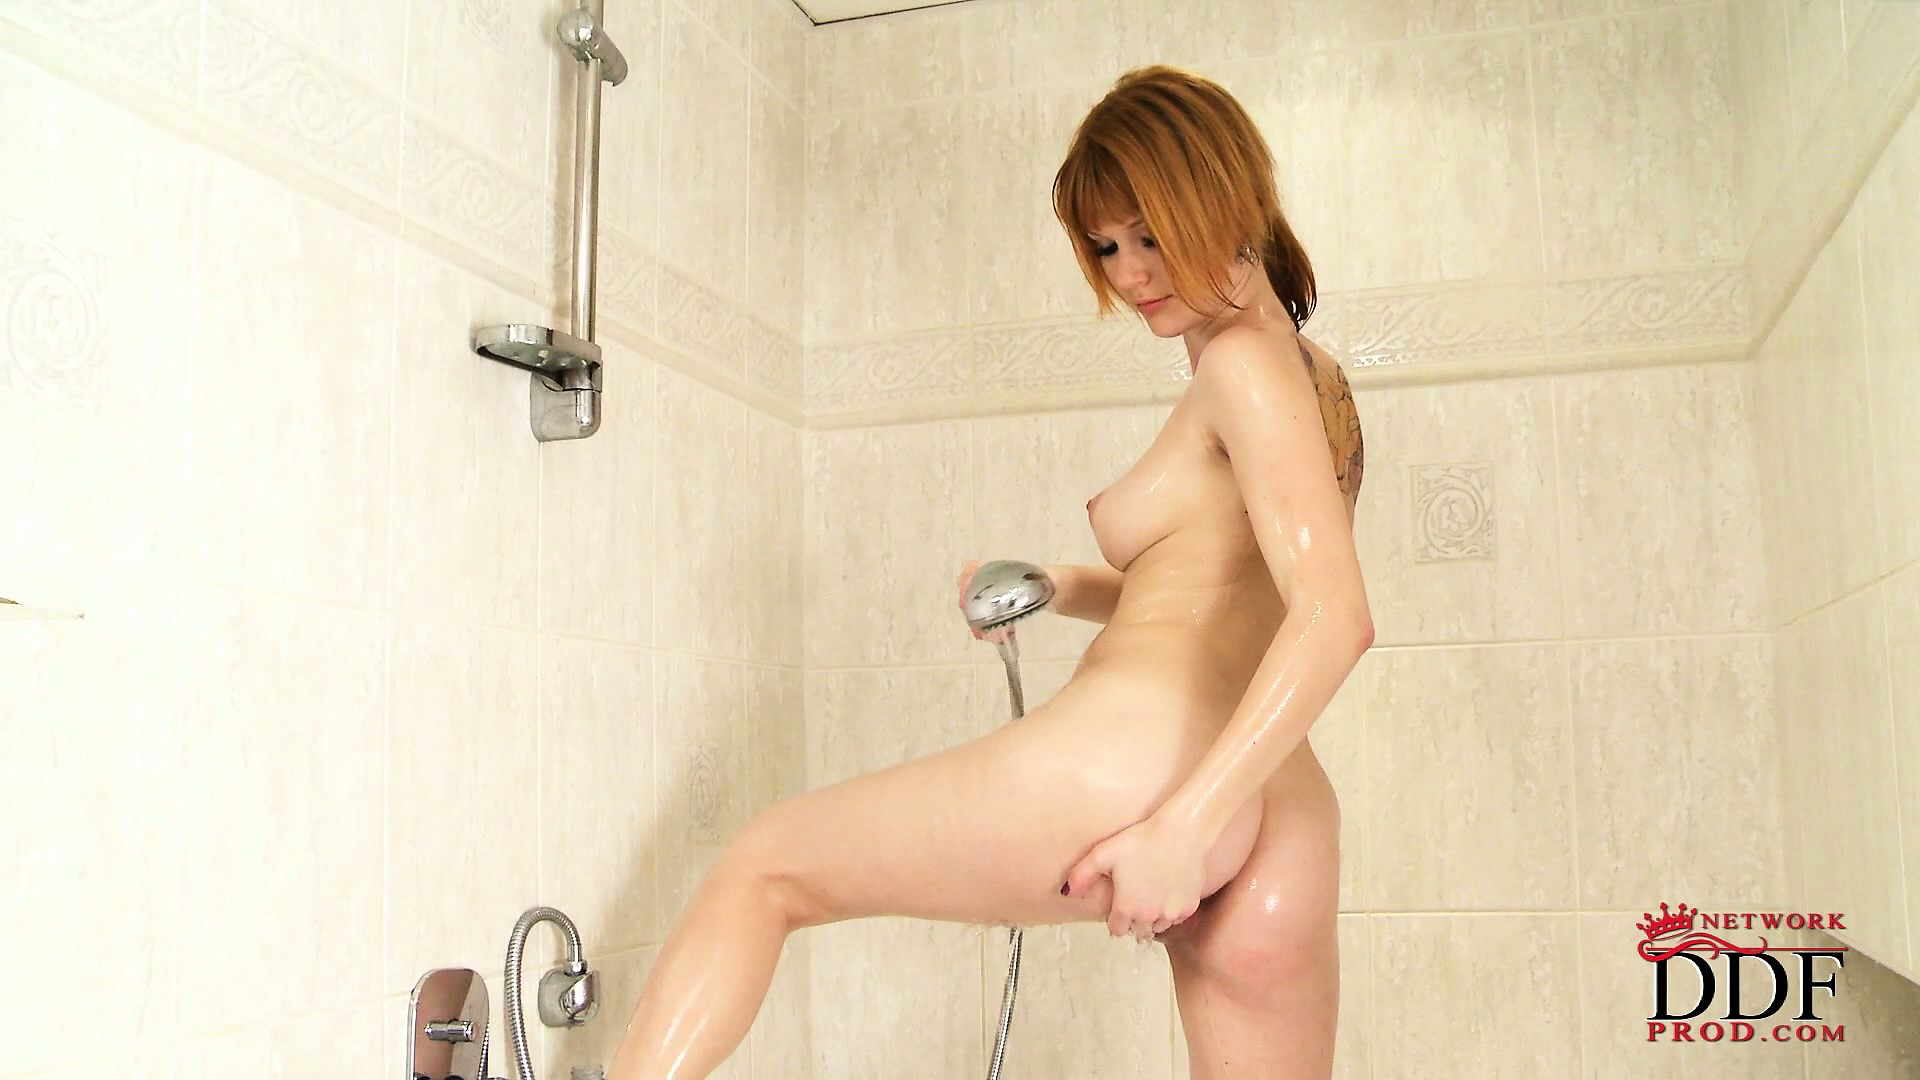 Sex Movie of Beautiful Girl Reveals Her Adorable Tits, Superb Ass And Tight Shaved Twat In The Shower